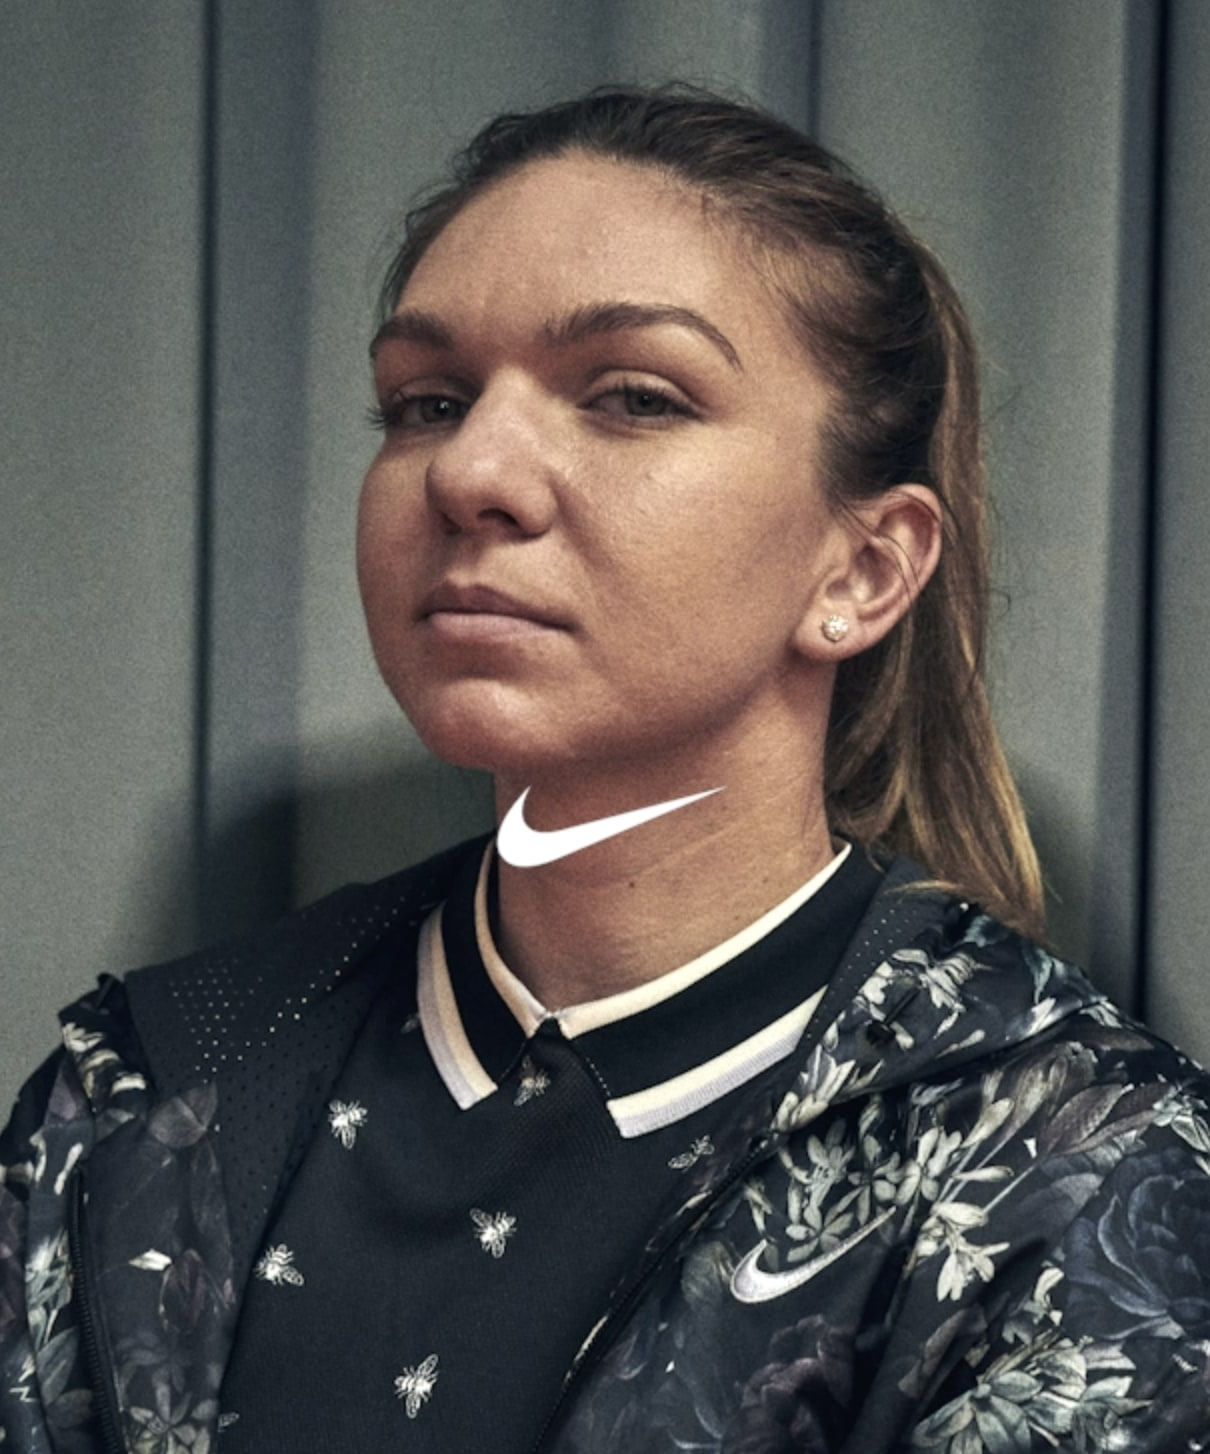 Nike - Dream Crazier - Simona Halep